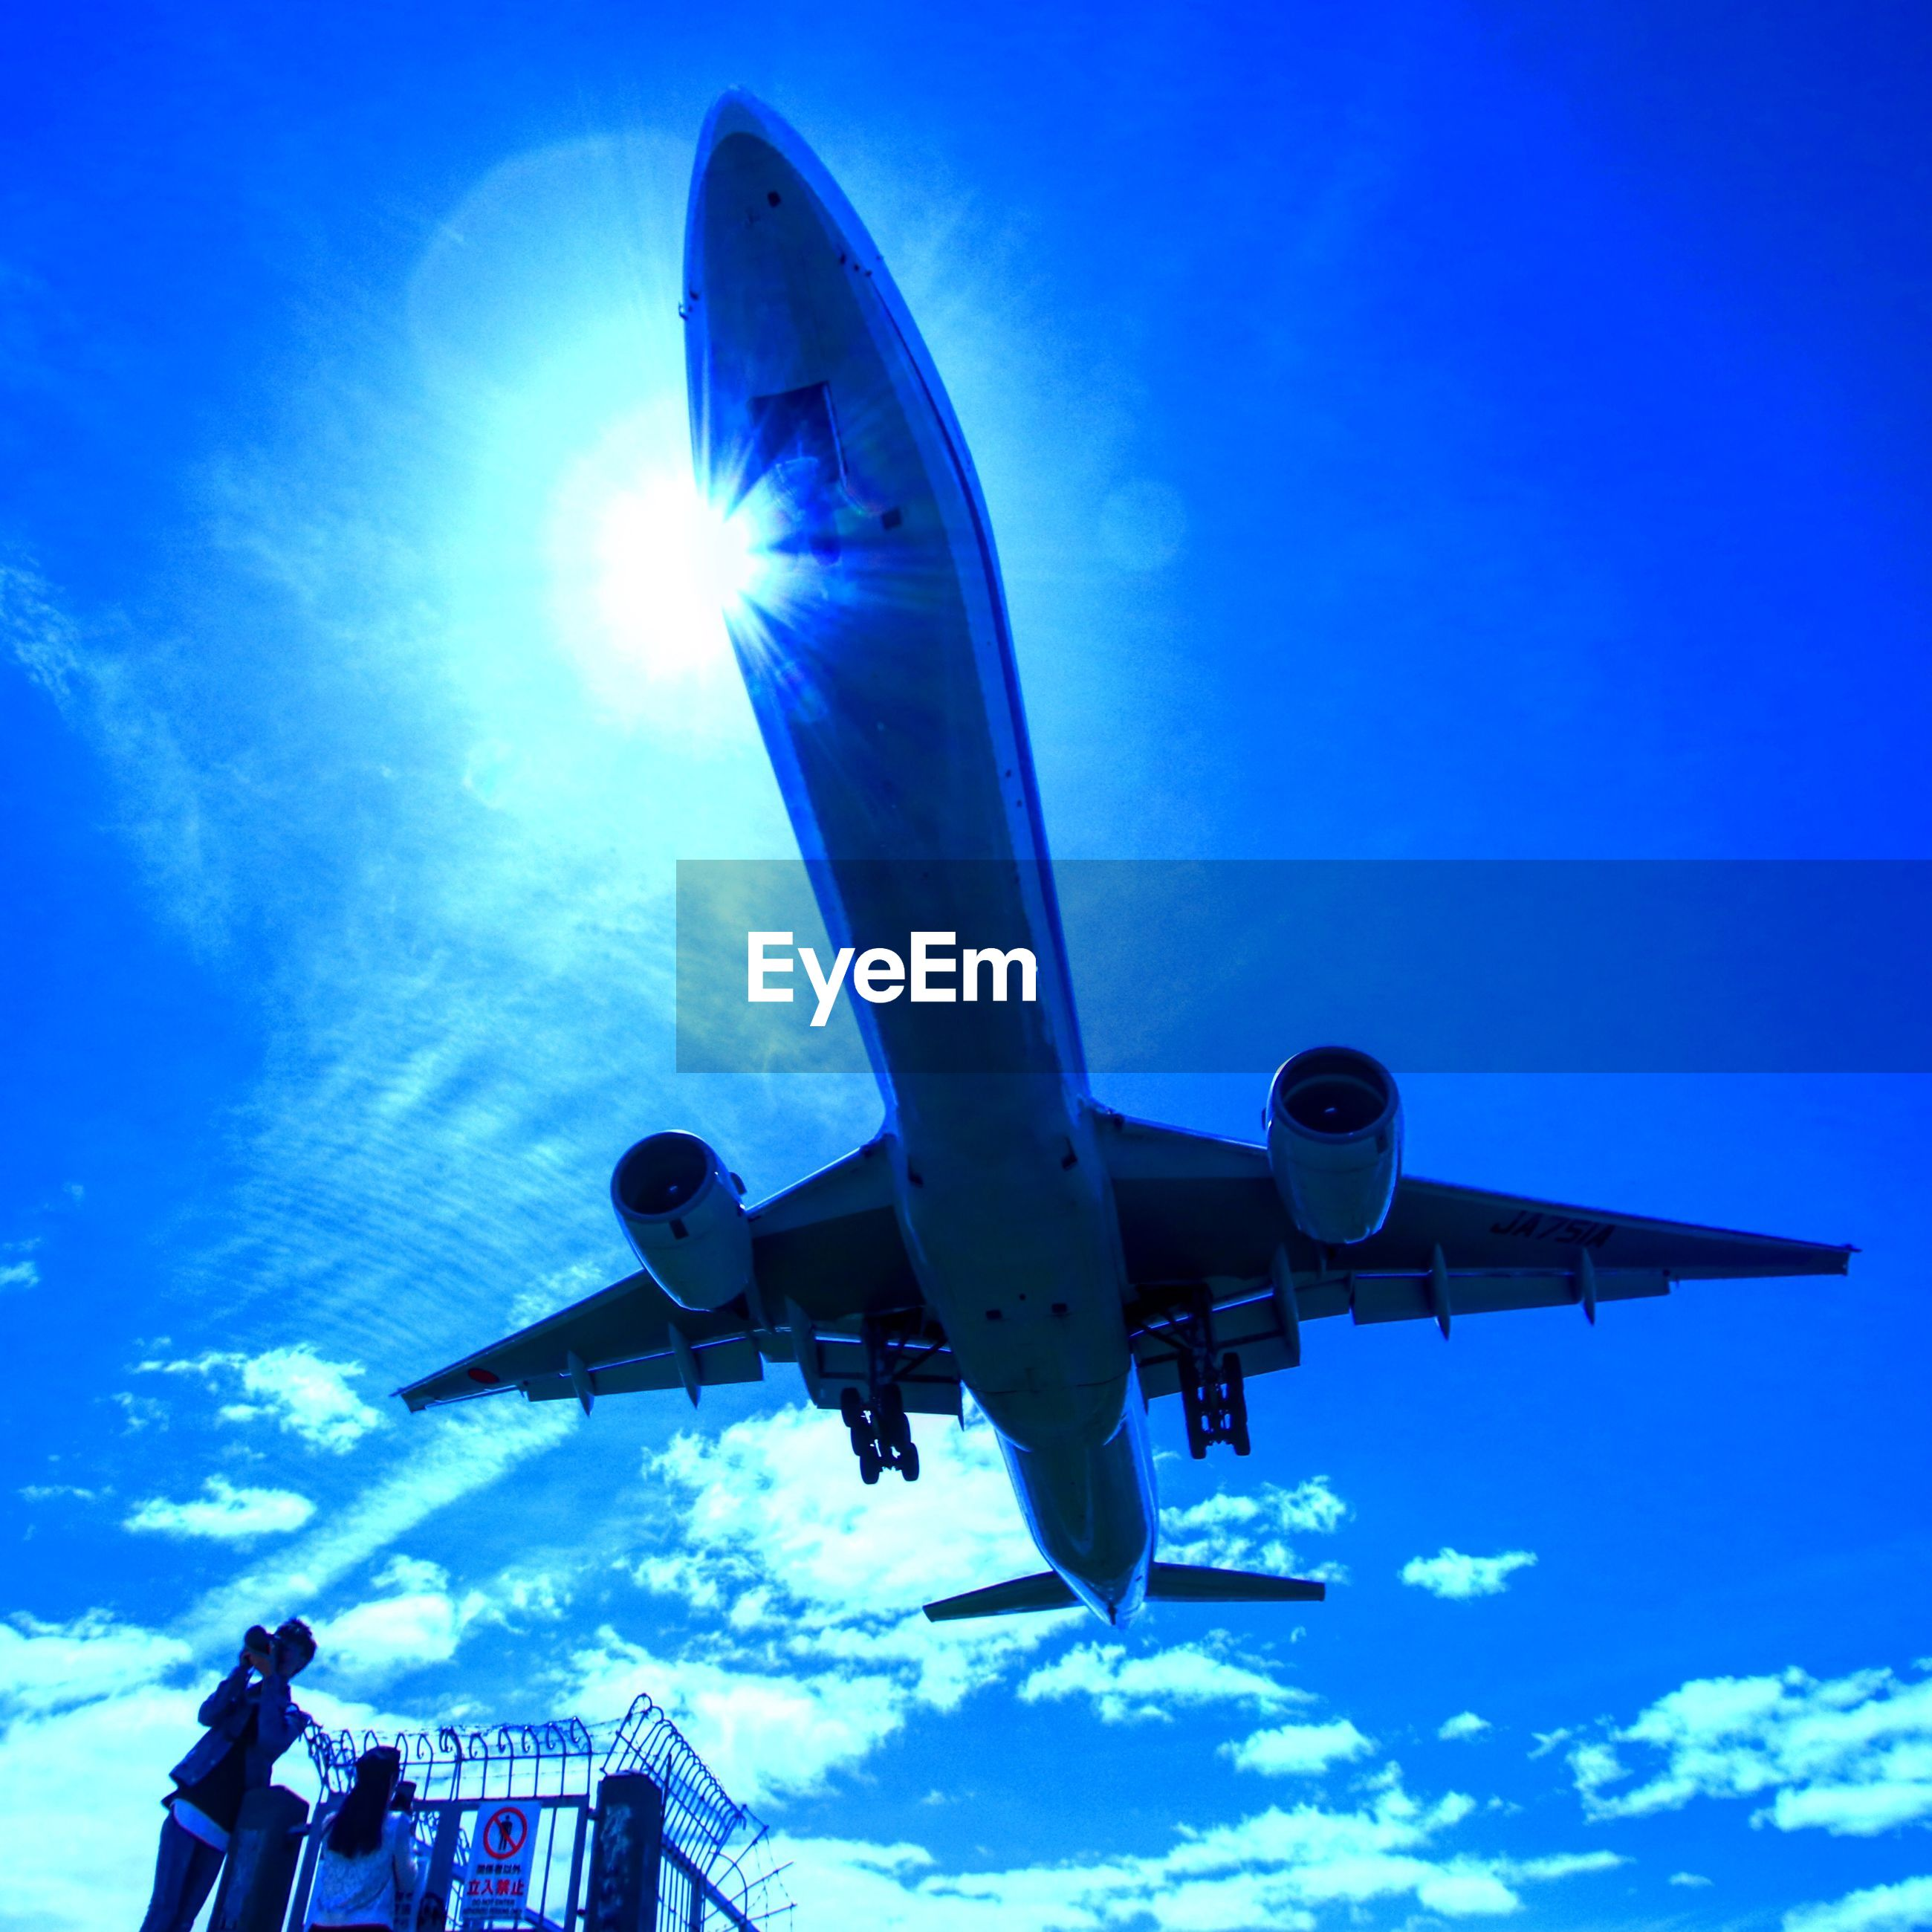 sky, air vehicle, blue, low angle view, mode of transportation, airplane, nature, transportation, sunlight, cloud - sky, motion, flying, travel, day, on the move, sun, outdoors, mid-air, sunbeam, no people, lens flare, aerospace industry, plane